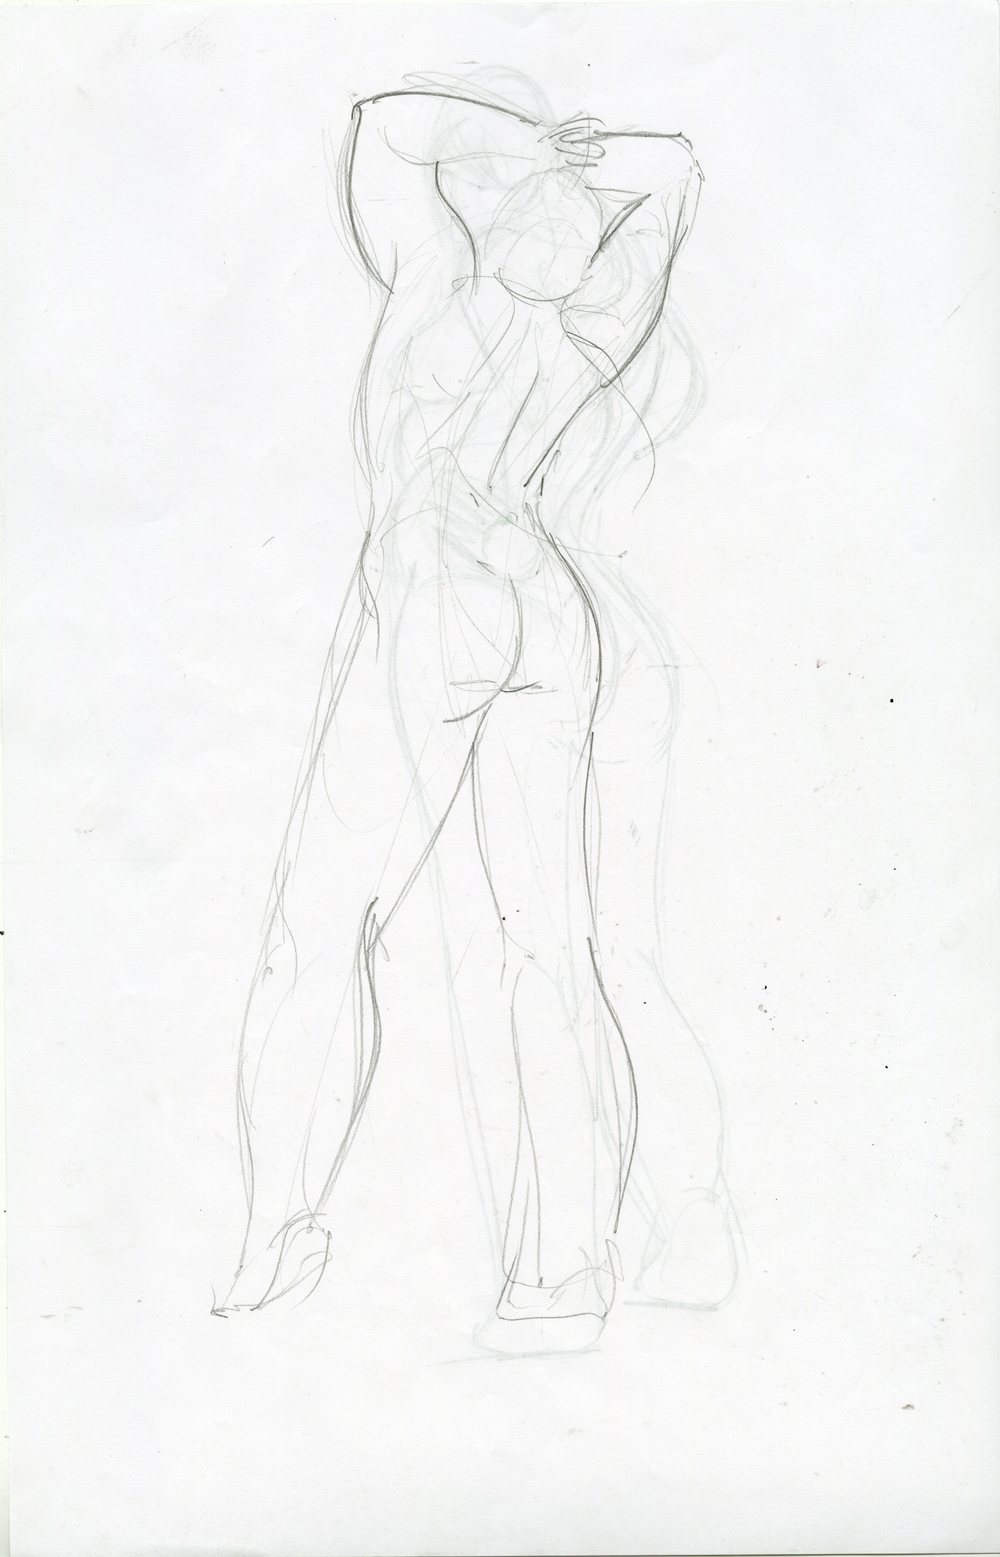 lifeDrawing_011.jpg